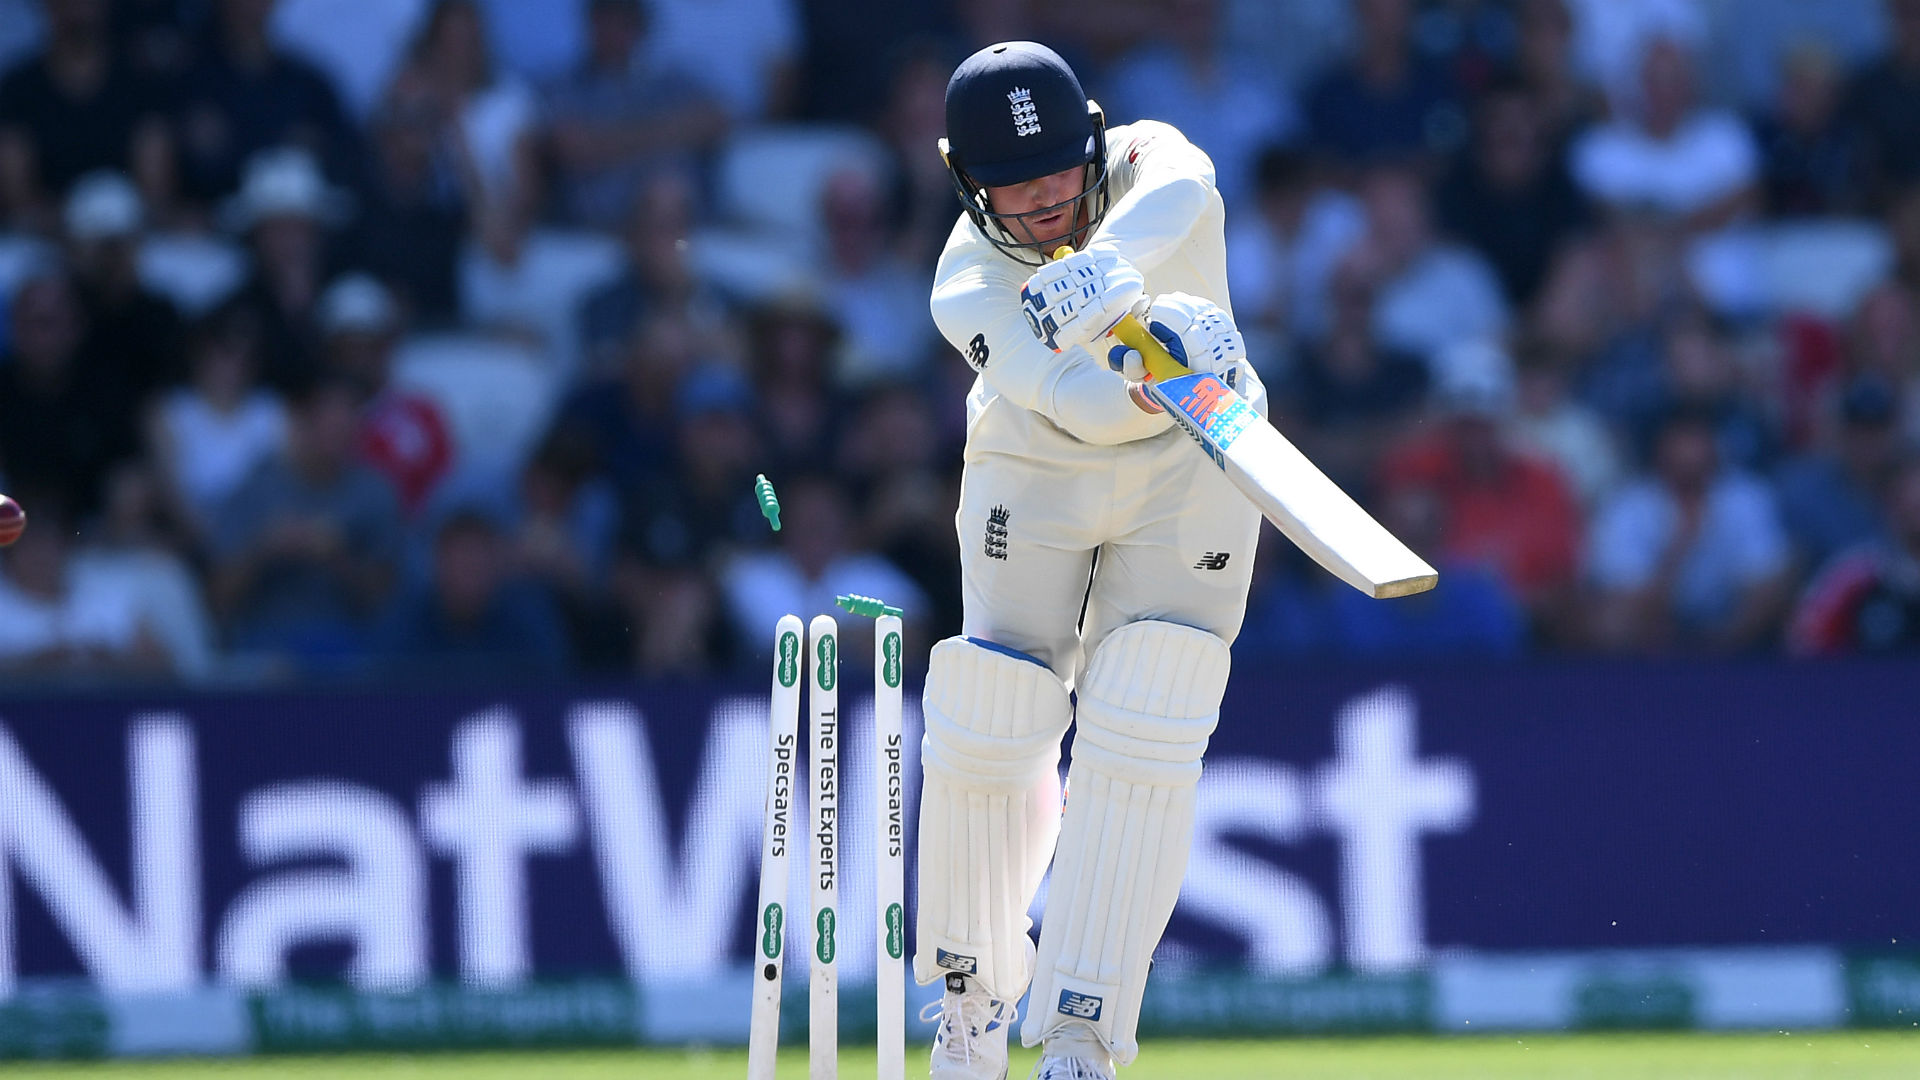 Ashes 2019: Roy facing axe, Aussie batting woes and other issues for the fourth Test